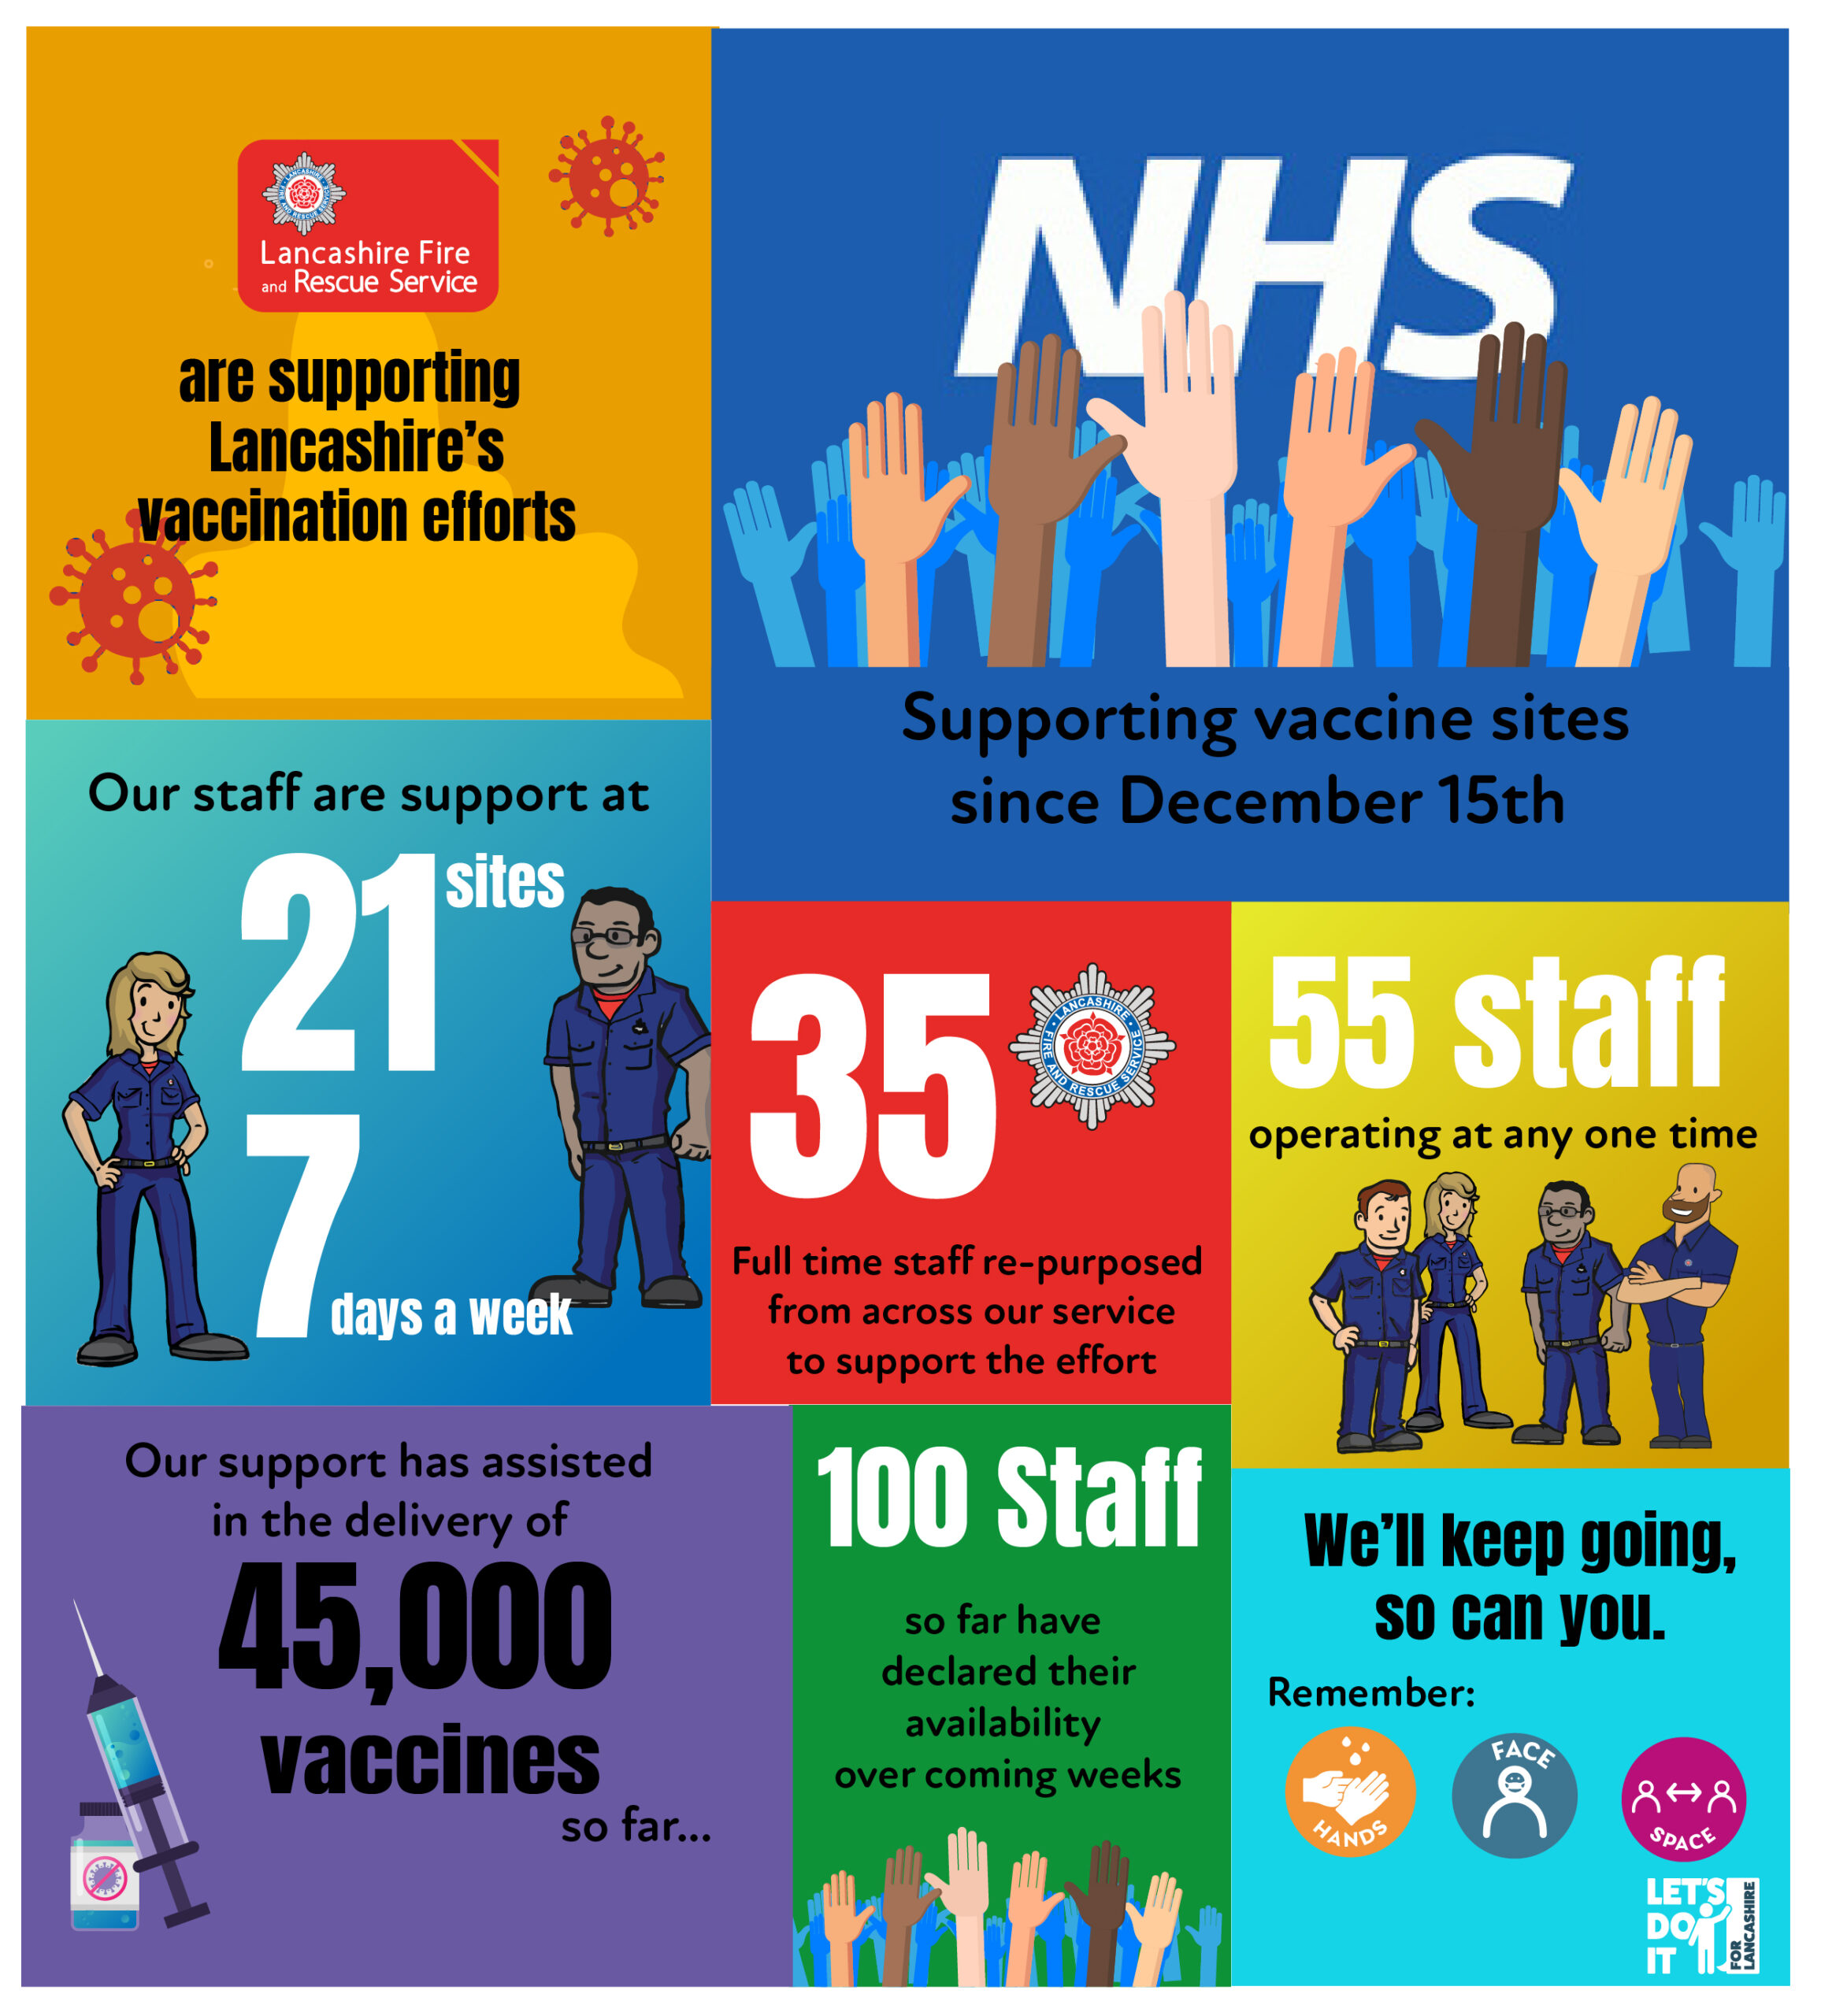 this shows a collection of facts and graphics showing the resposne LFRS has offered towards the UKs coronavirus vaccination programme